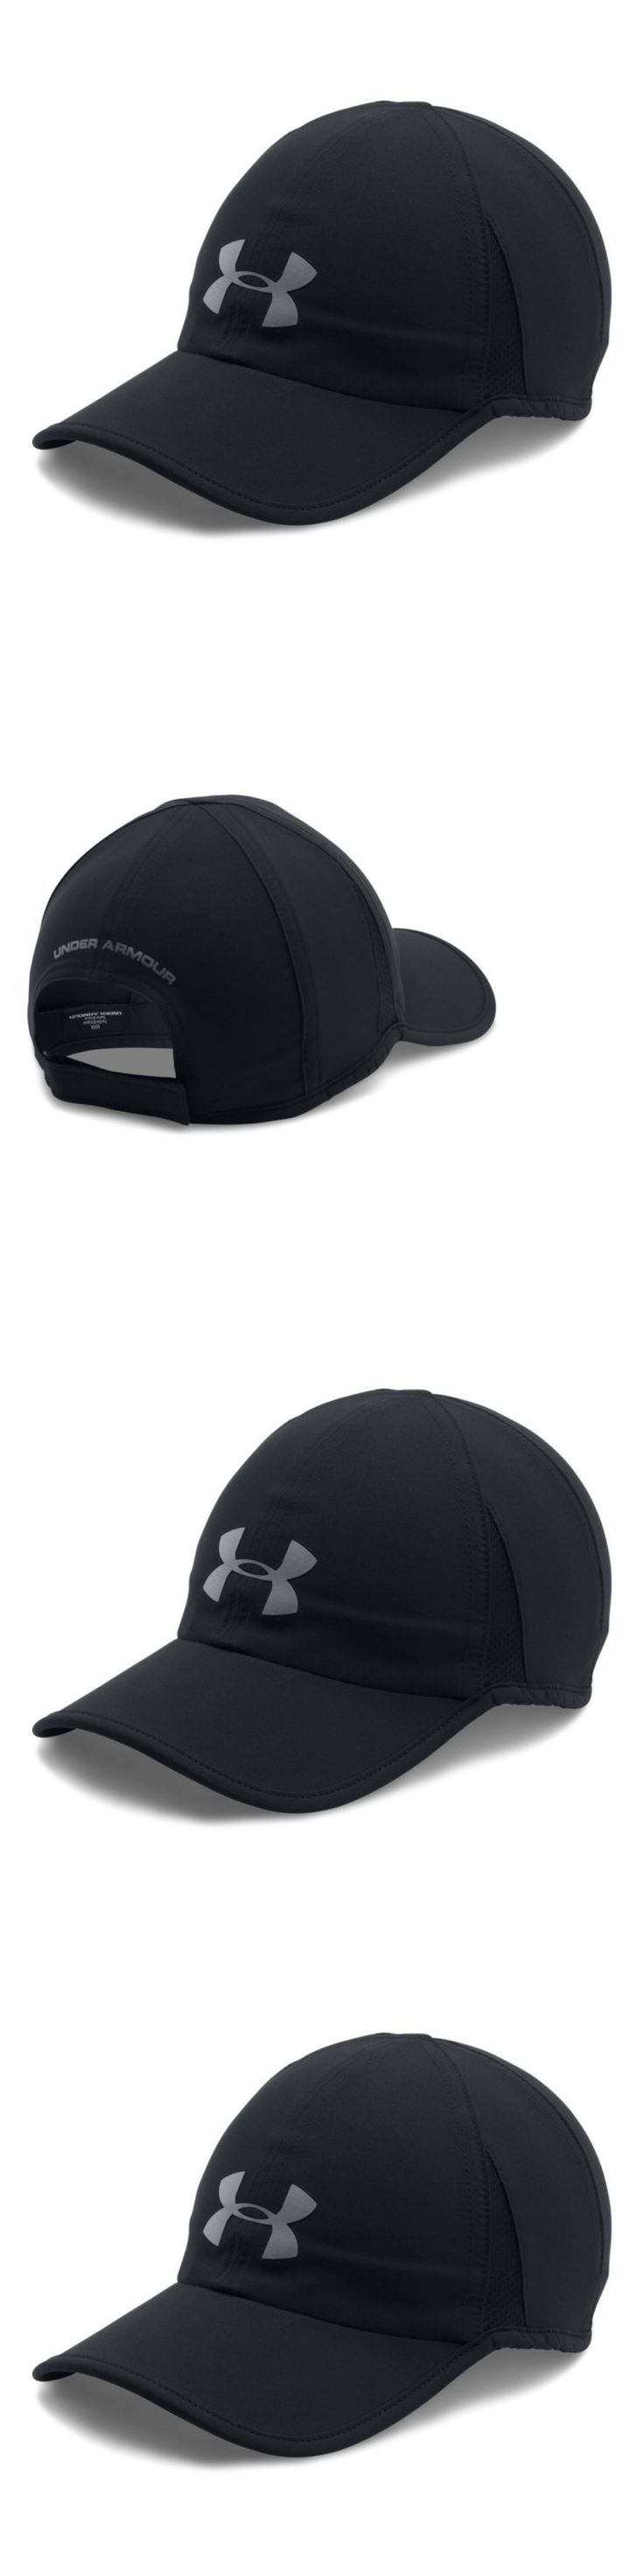 Hats and Headwear 158918: Under Armour Men S Shadow 4.0 Run Cap, Black Black, One Size -> BUY IT NOW ONLY: $31.66 on eBay!